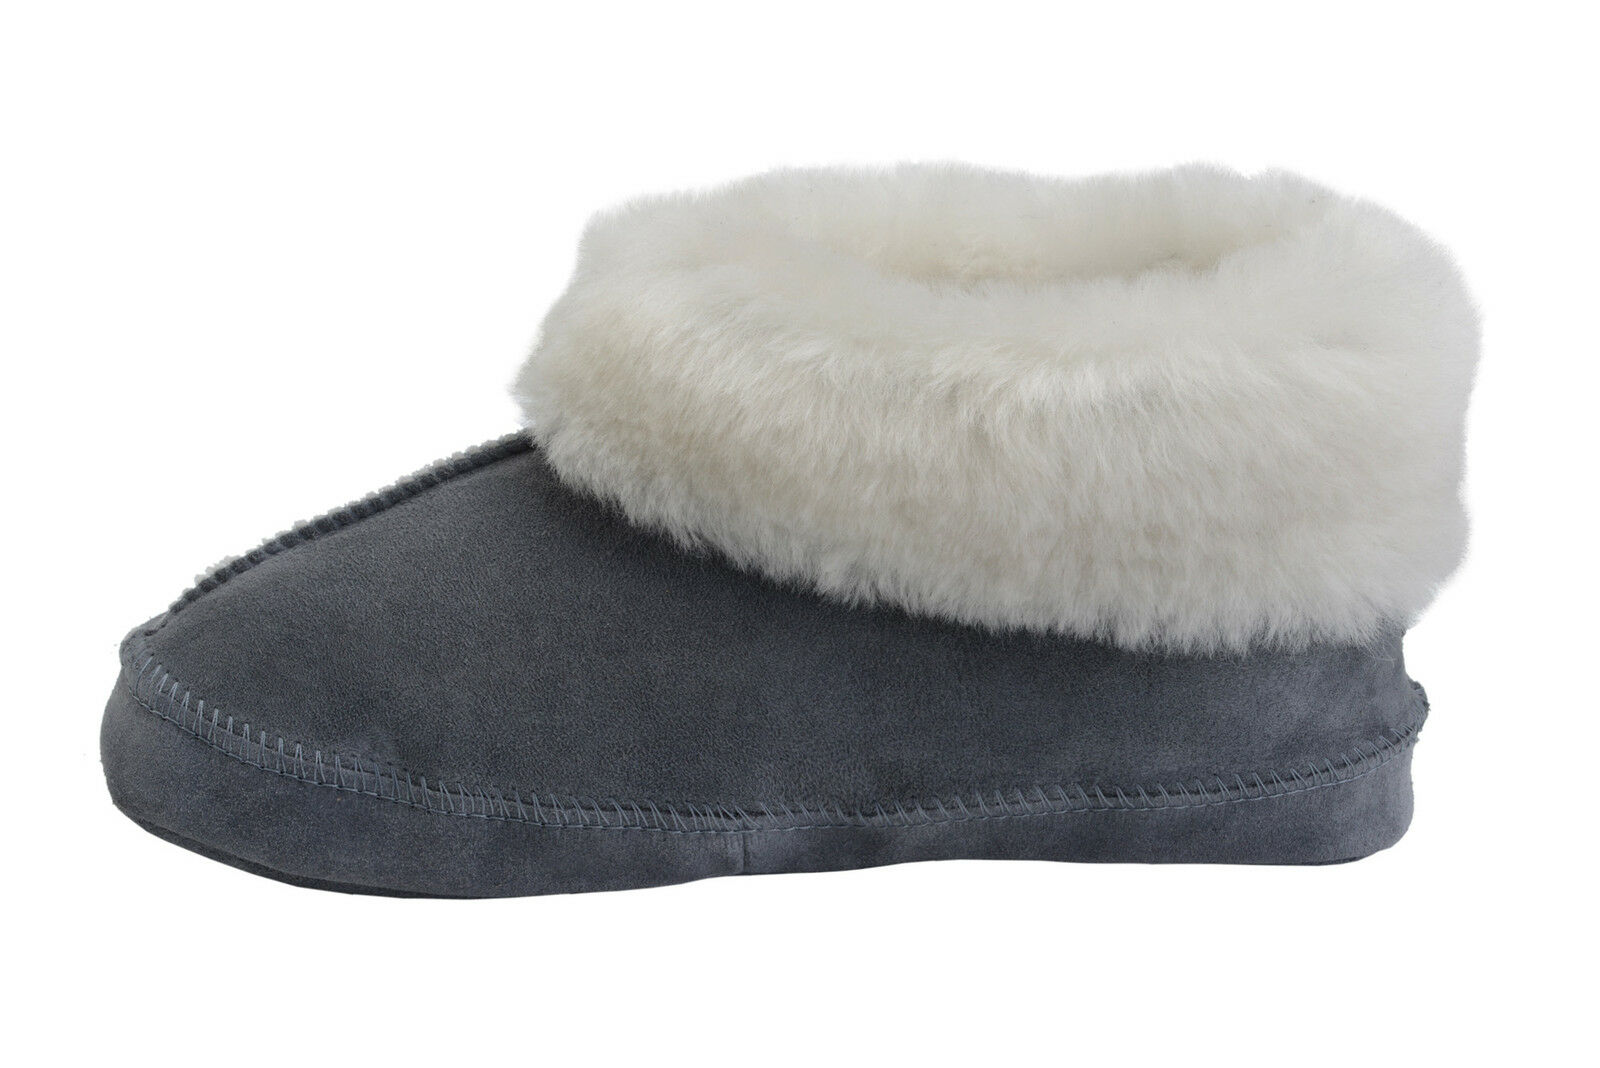 New Womens/Mens Boot SheepWool Fleece House Slippers Sheepskin Grey All Sizes